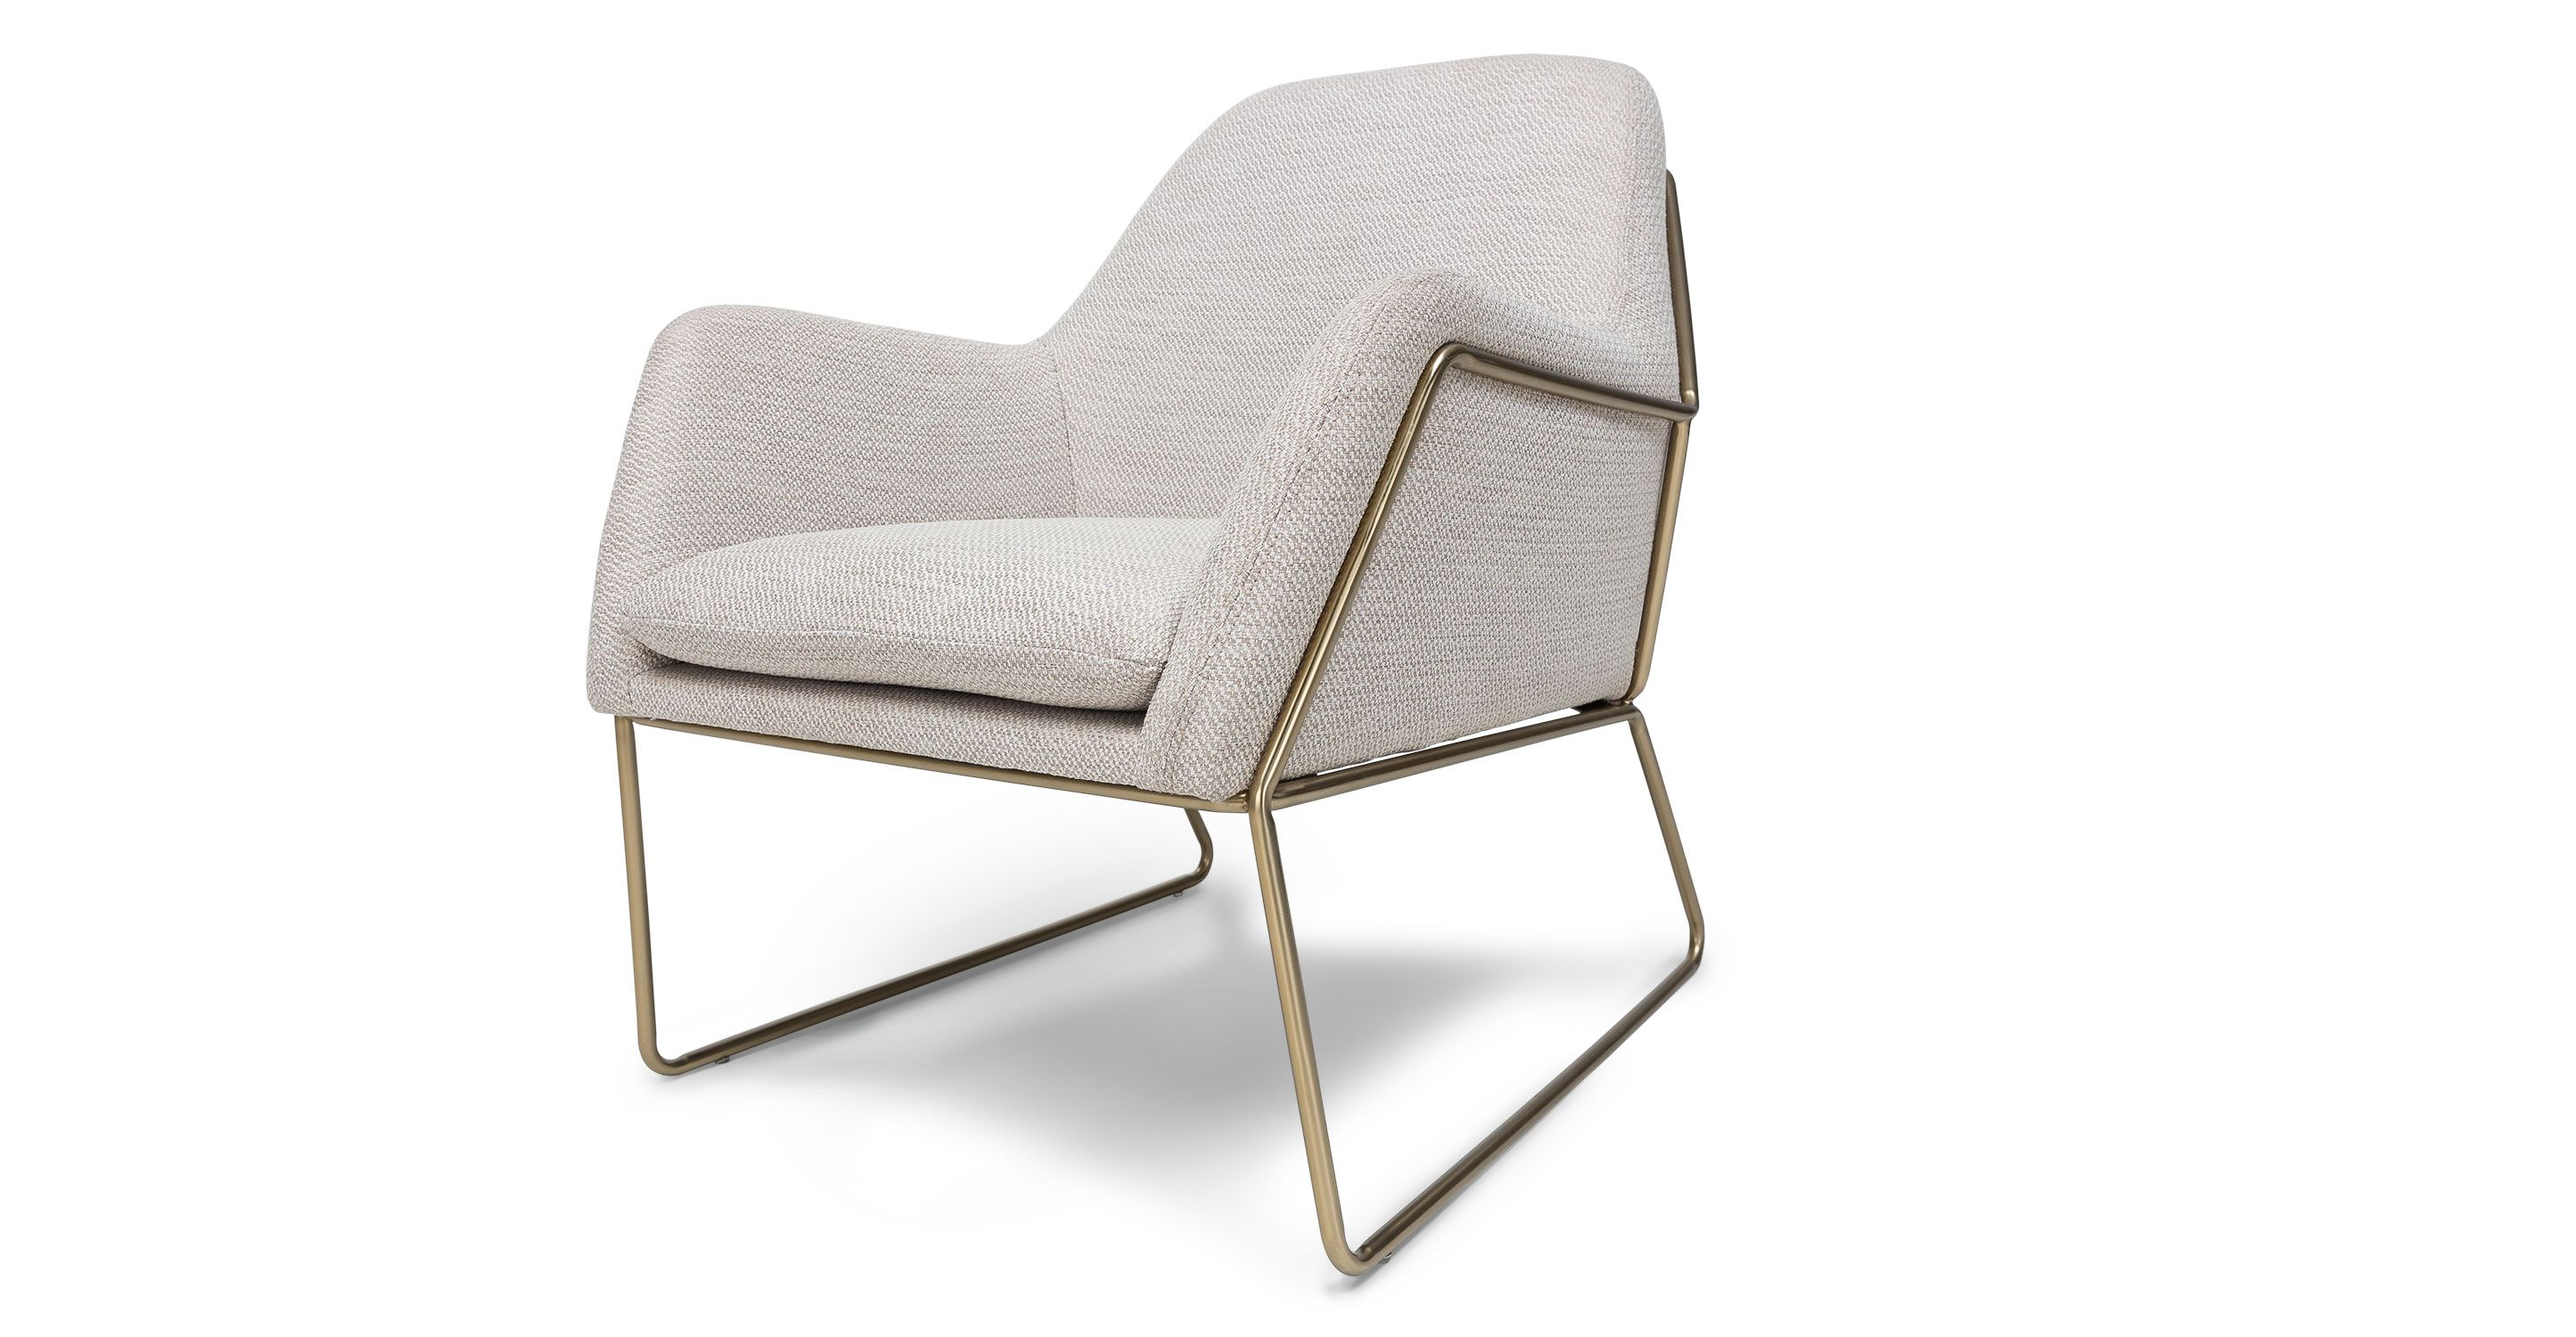 Cheap Scandinavian Furniture Online Ivory White Armchair Metal Legs Article Forma Contemporary